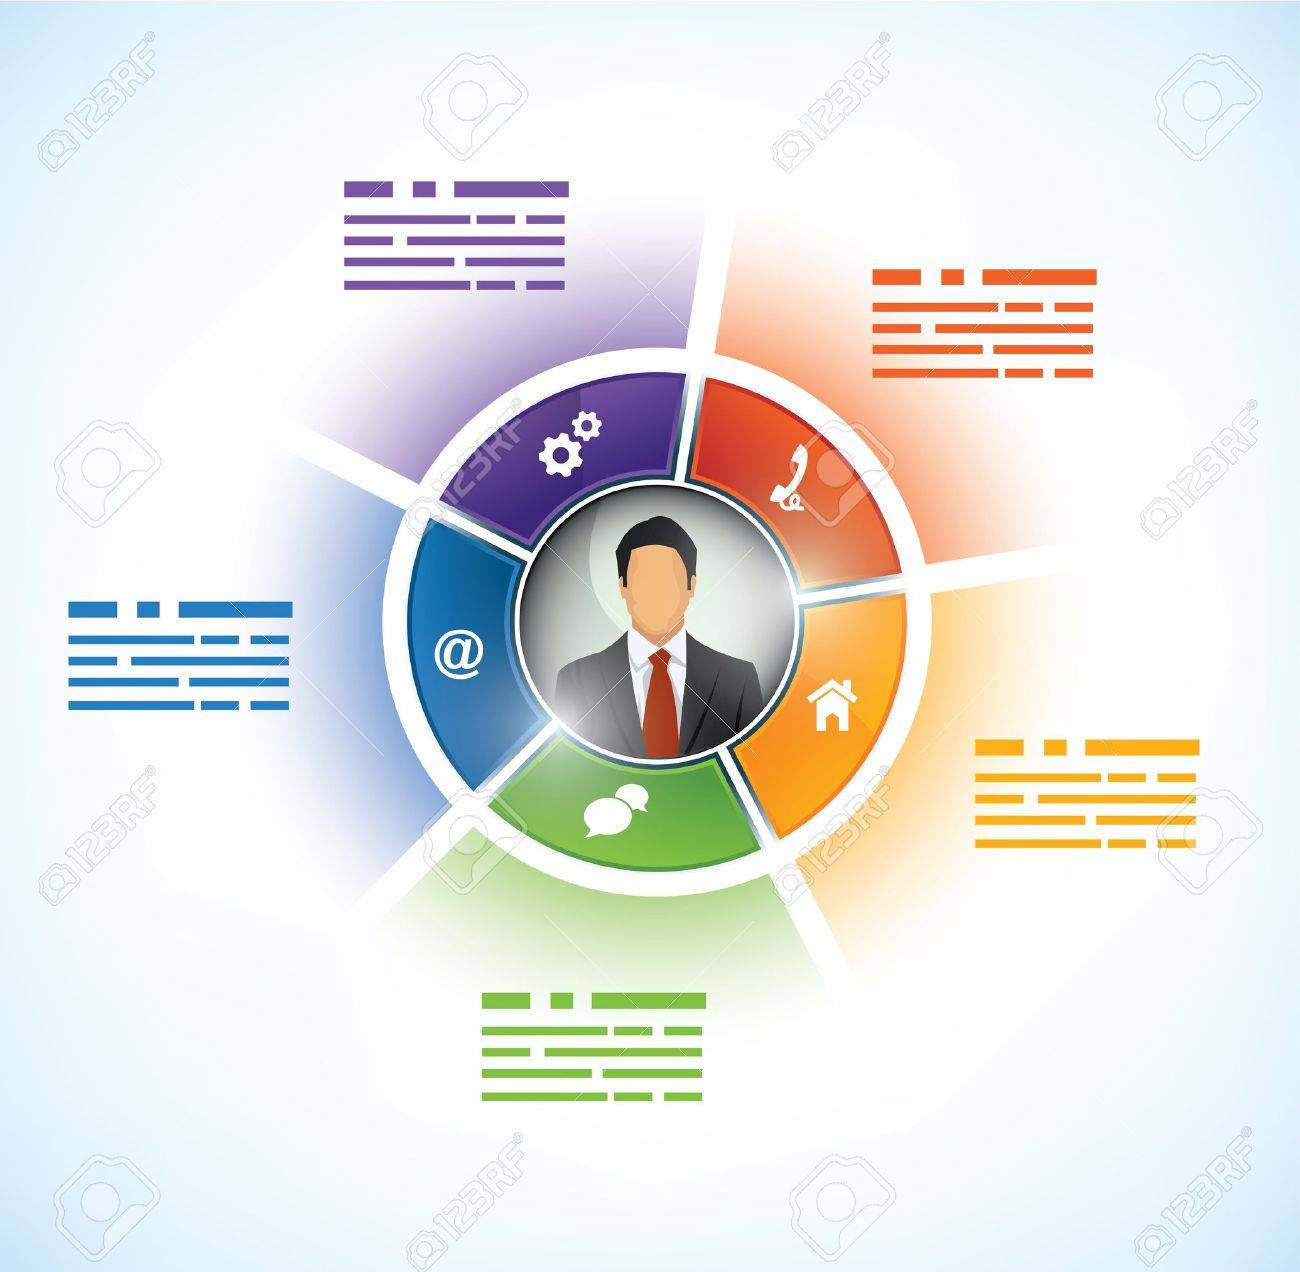 Five parts Presentation Template with a business persons avatar in the middle - 16448816